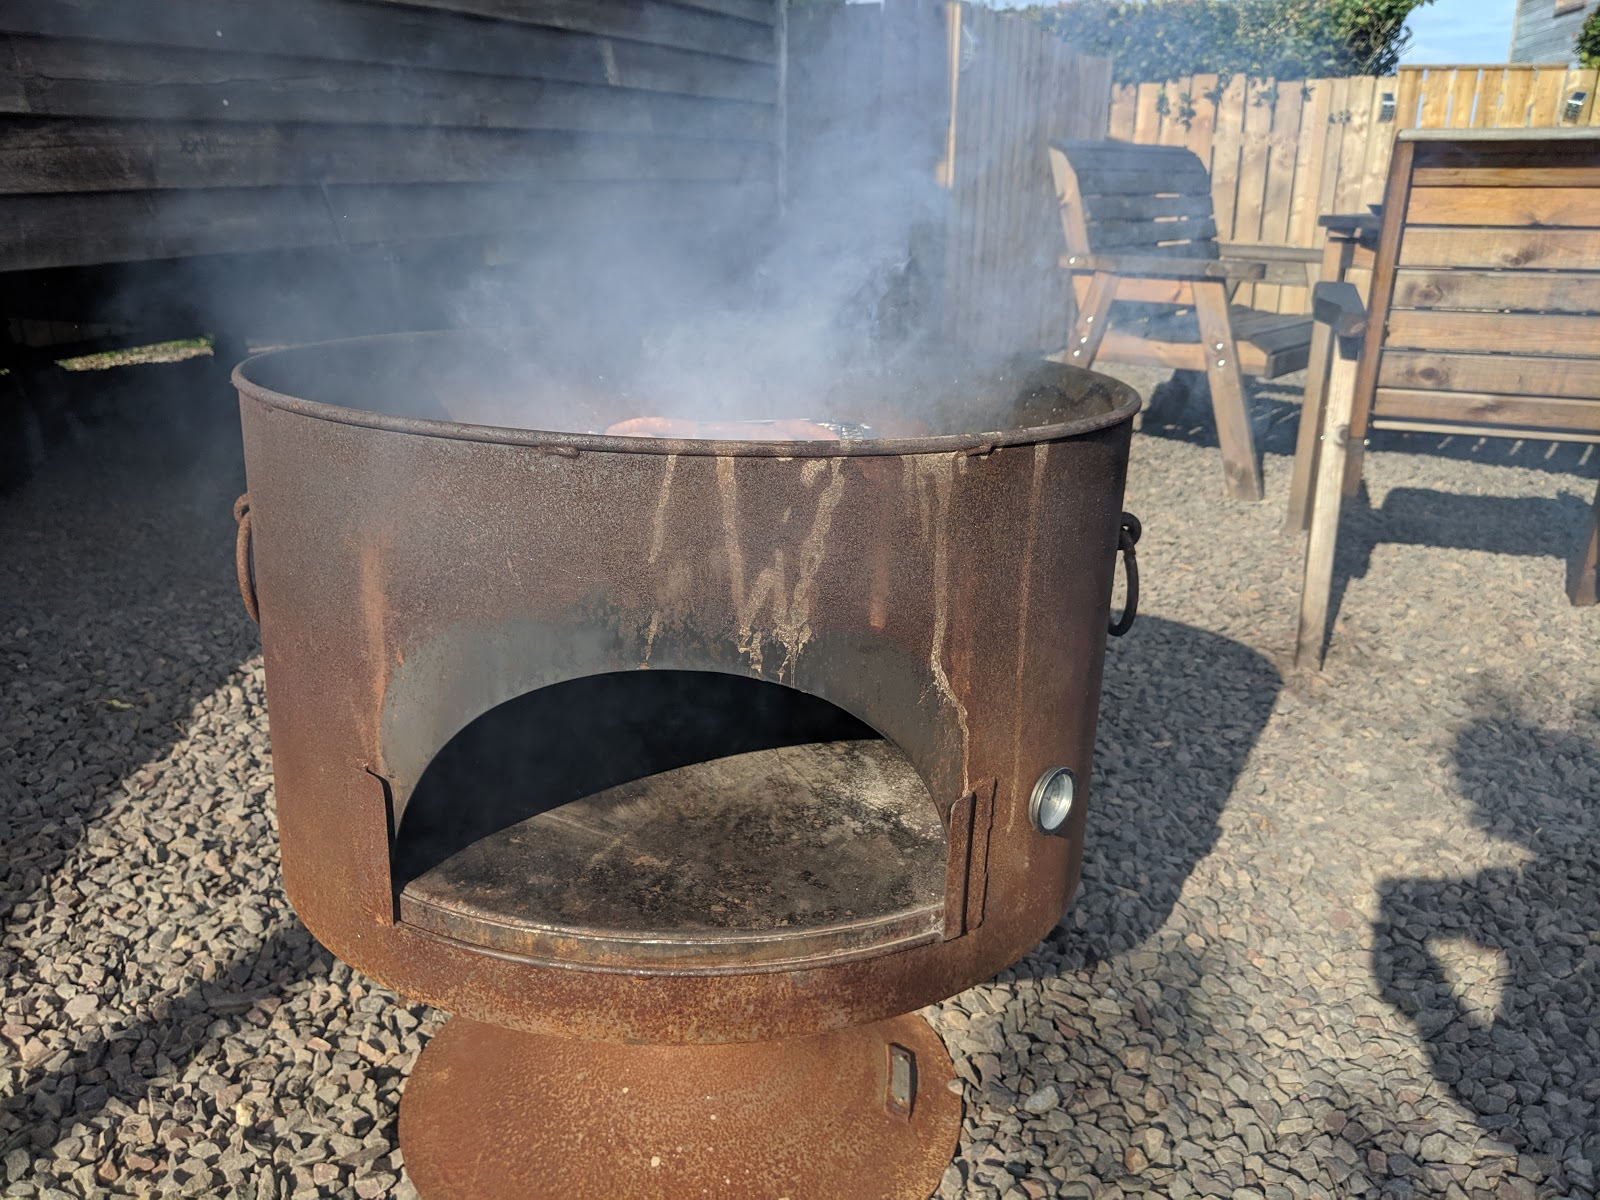 Shepherd's Retreats Beadnell Review - Dog-friendly Glamping in Northumberland - pizza oven and bbq